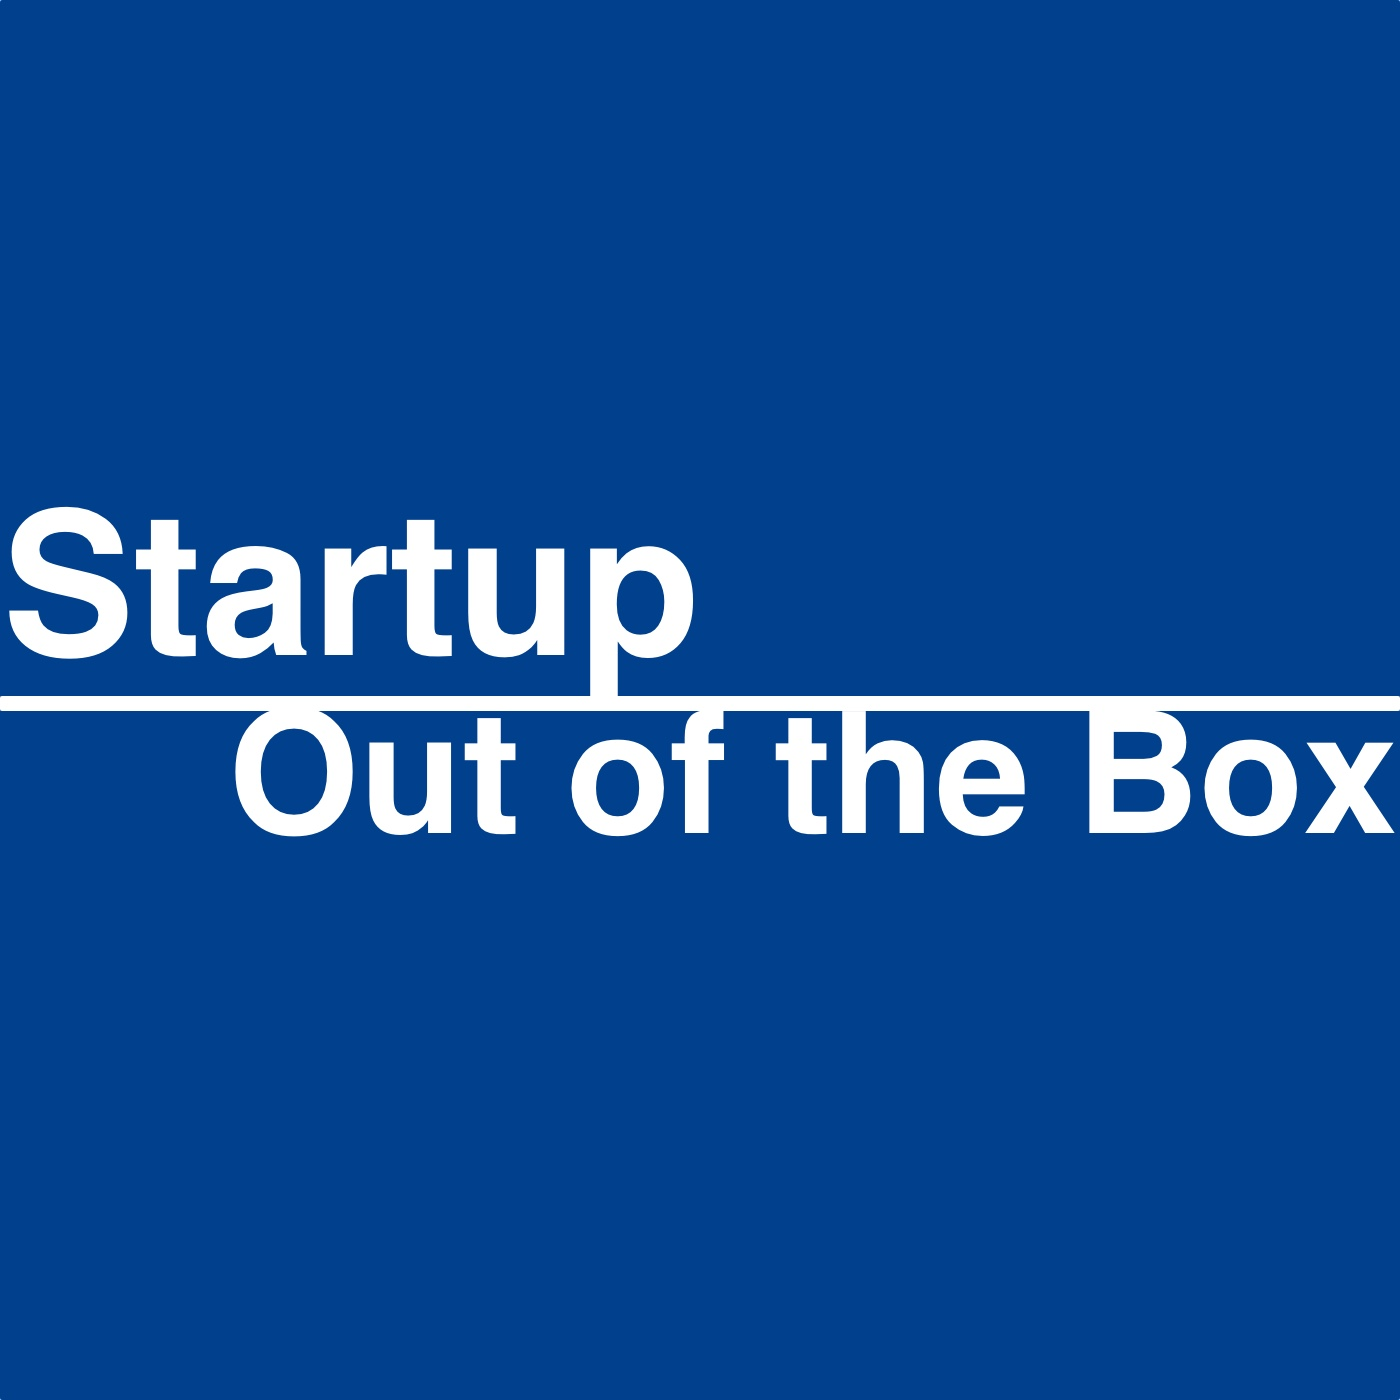 Startup out of the box